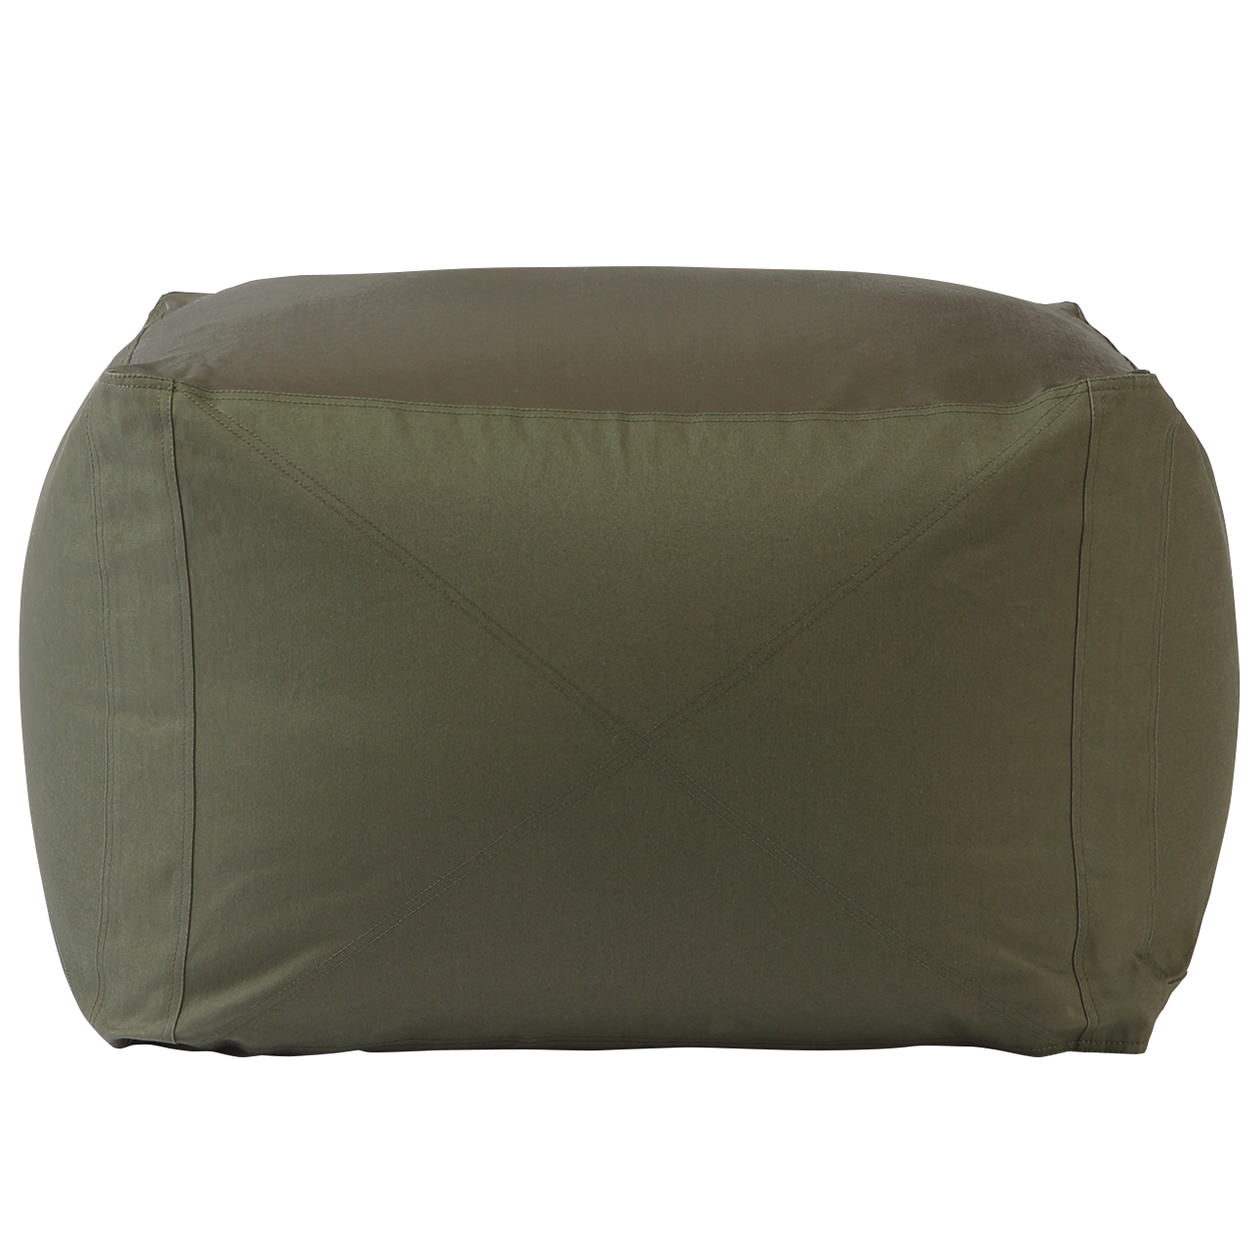 BEADS SOFA CHINO COVER / OLIVE DRAB